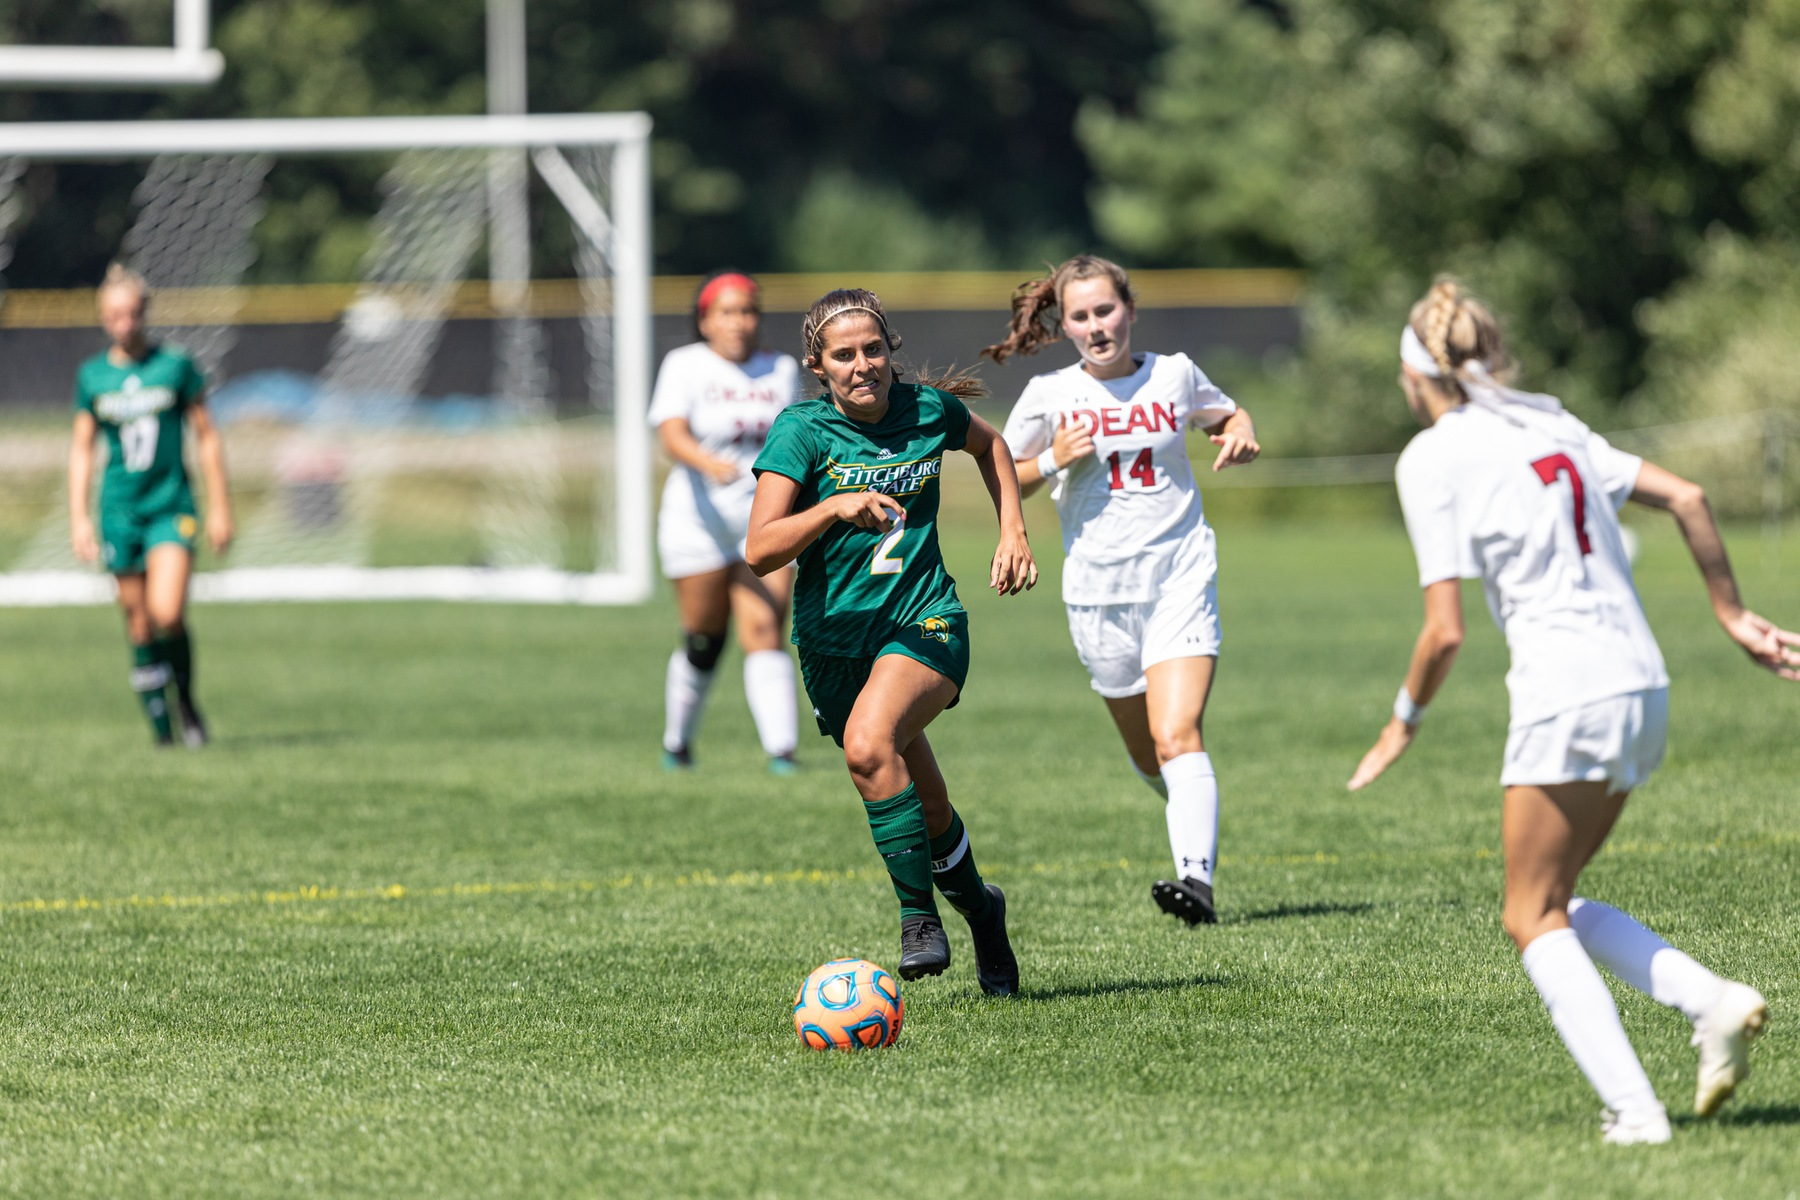 Falcons Double Up Trailblazers, 2-0